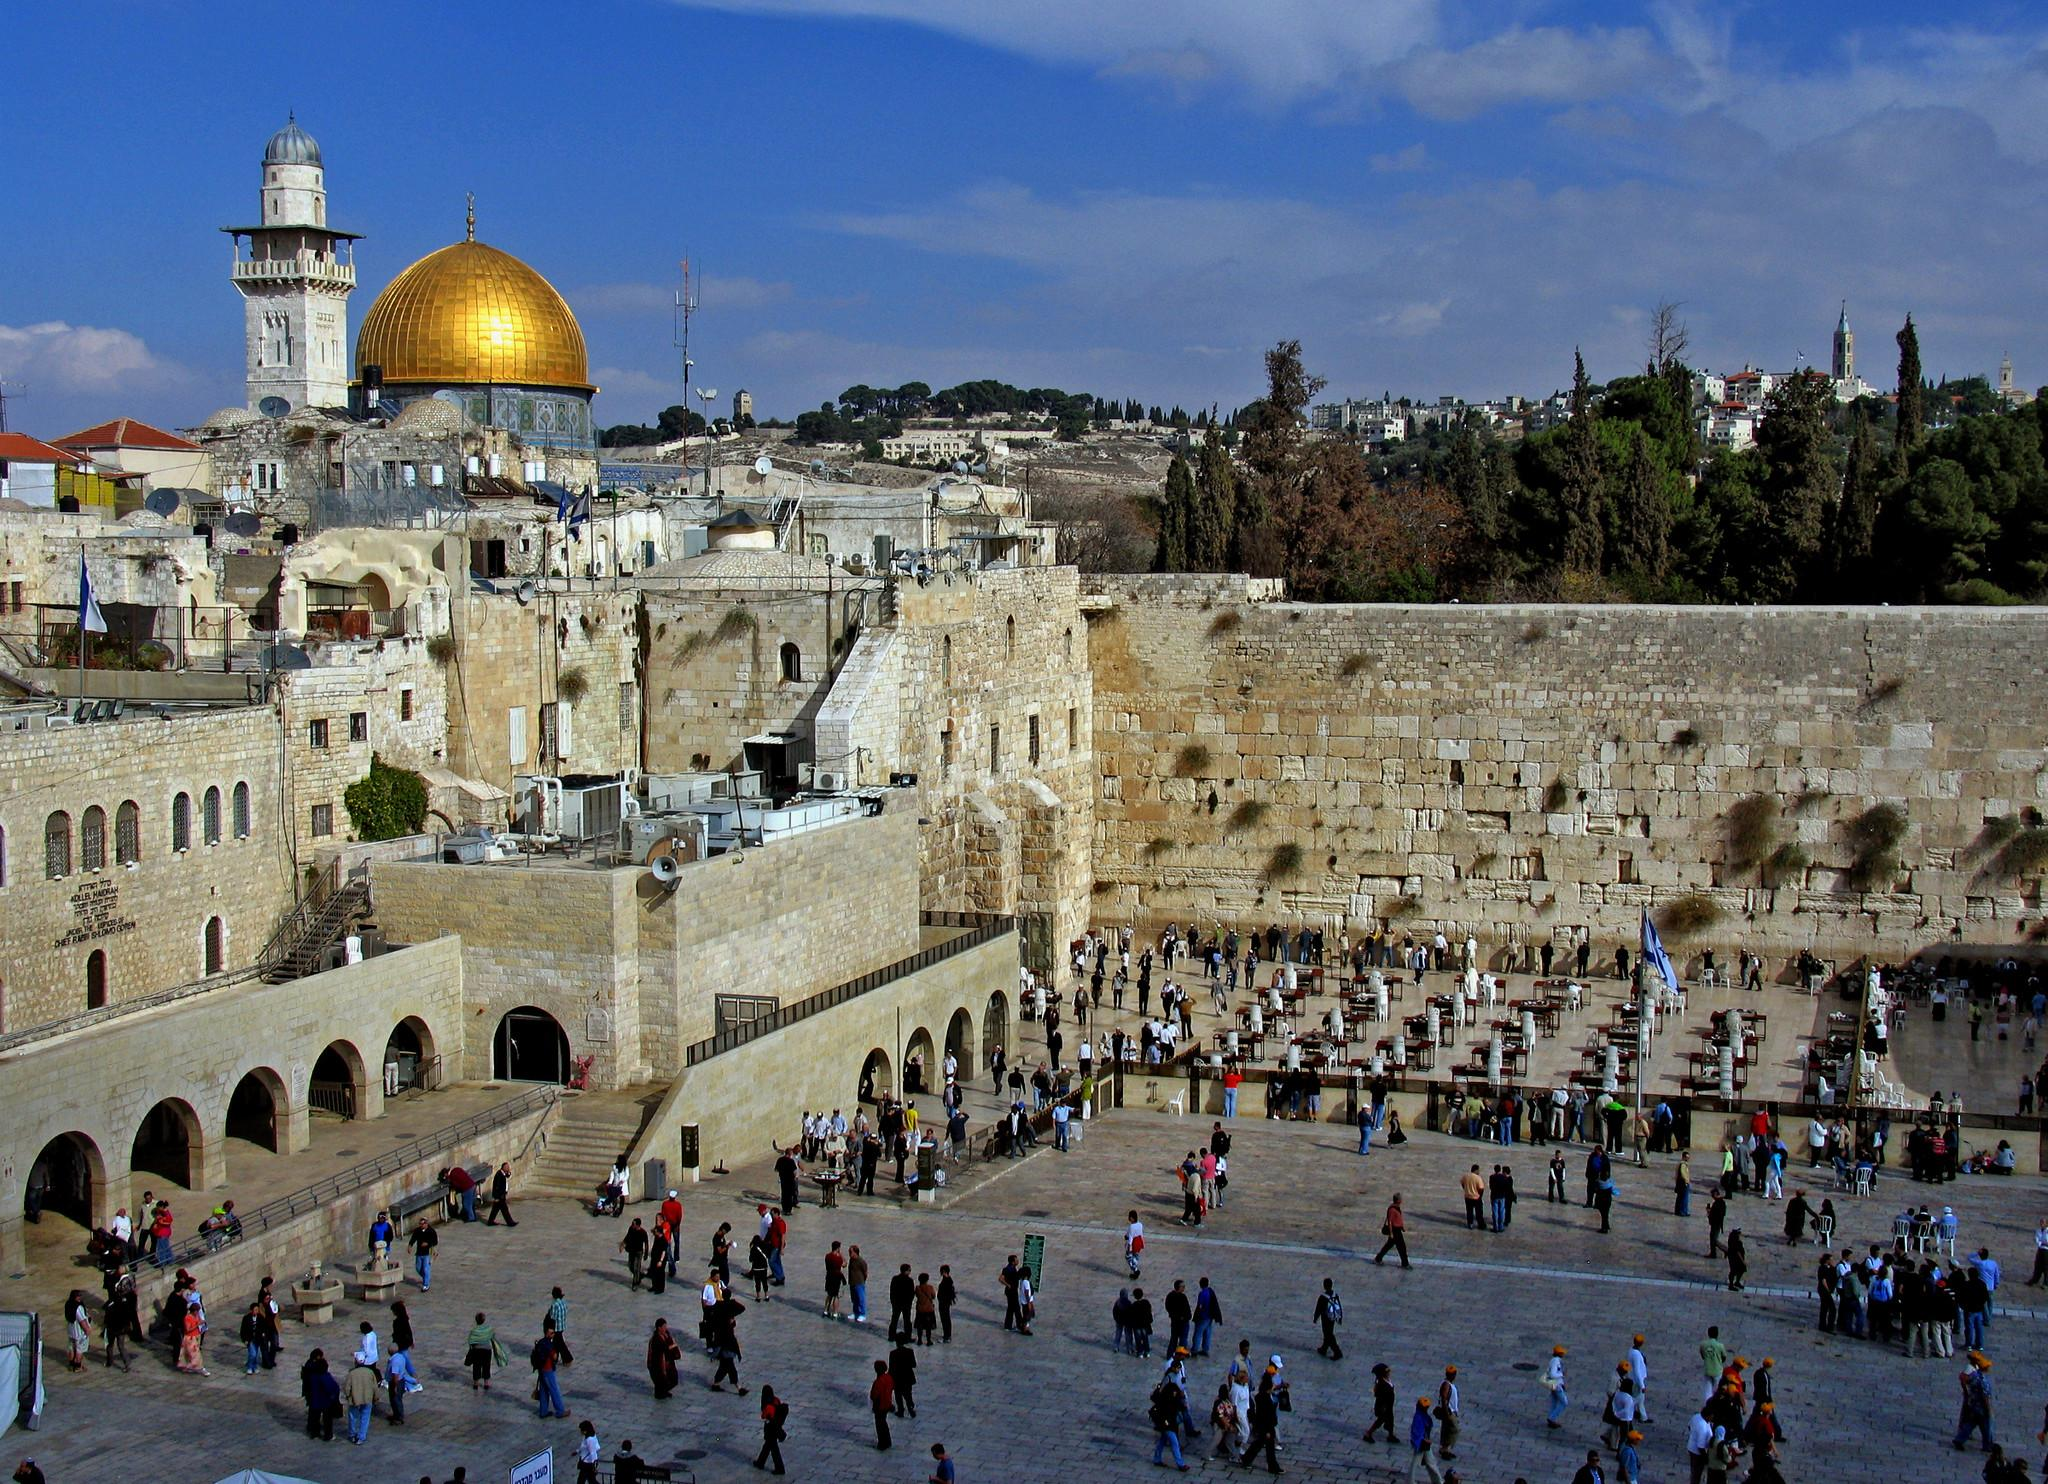 The Historical Background of the Israeli-Palestinian Conflict